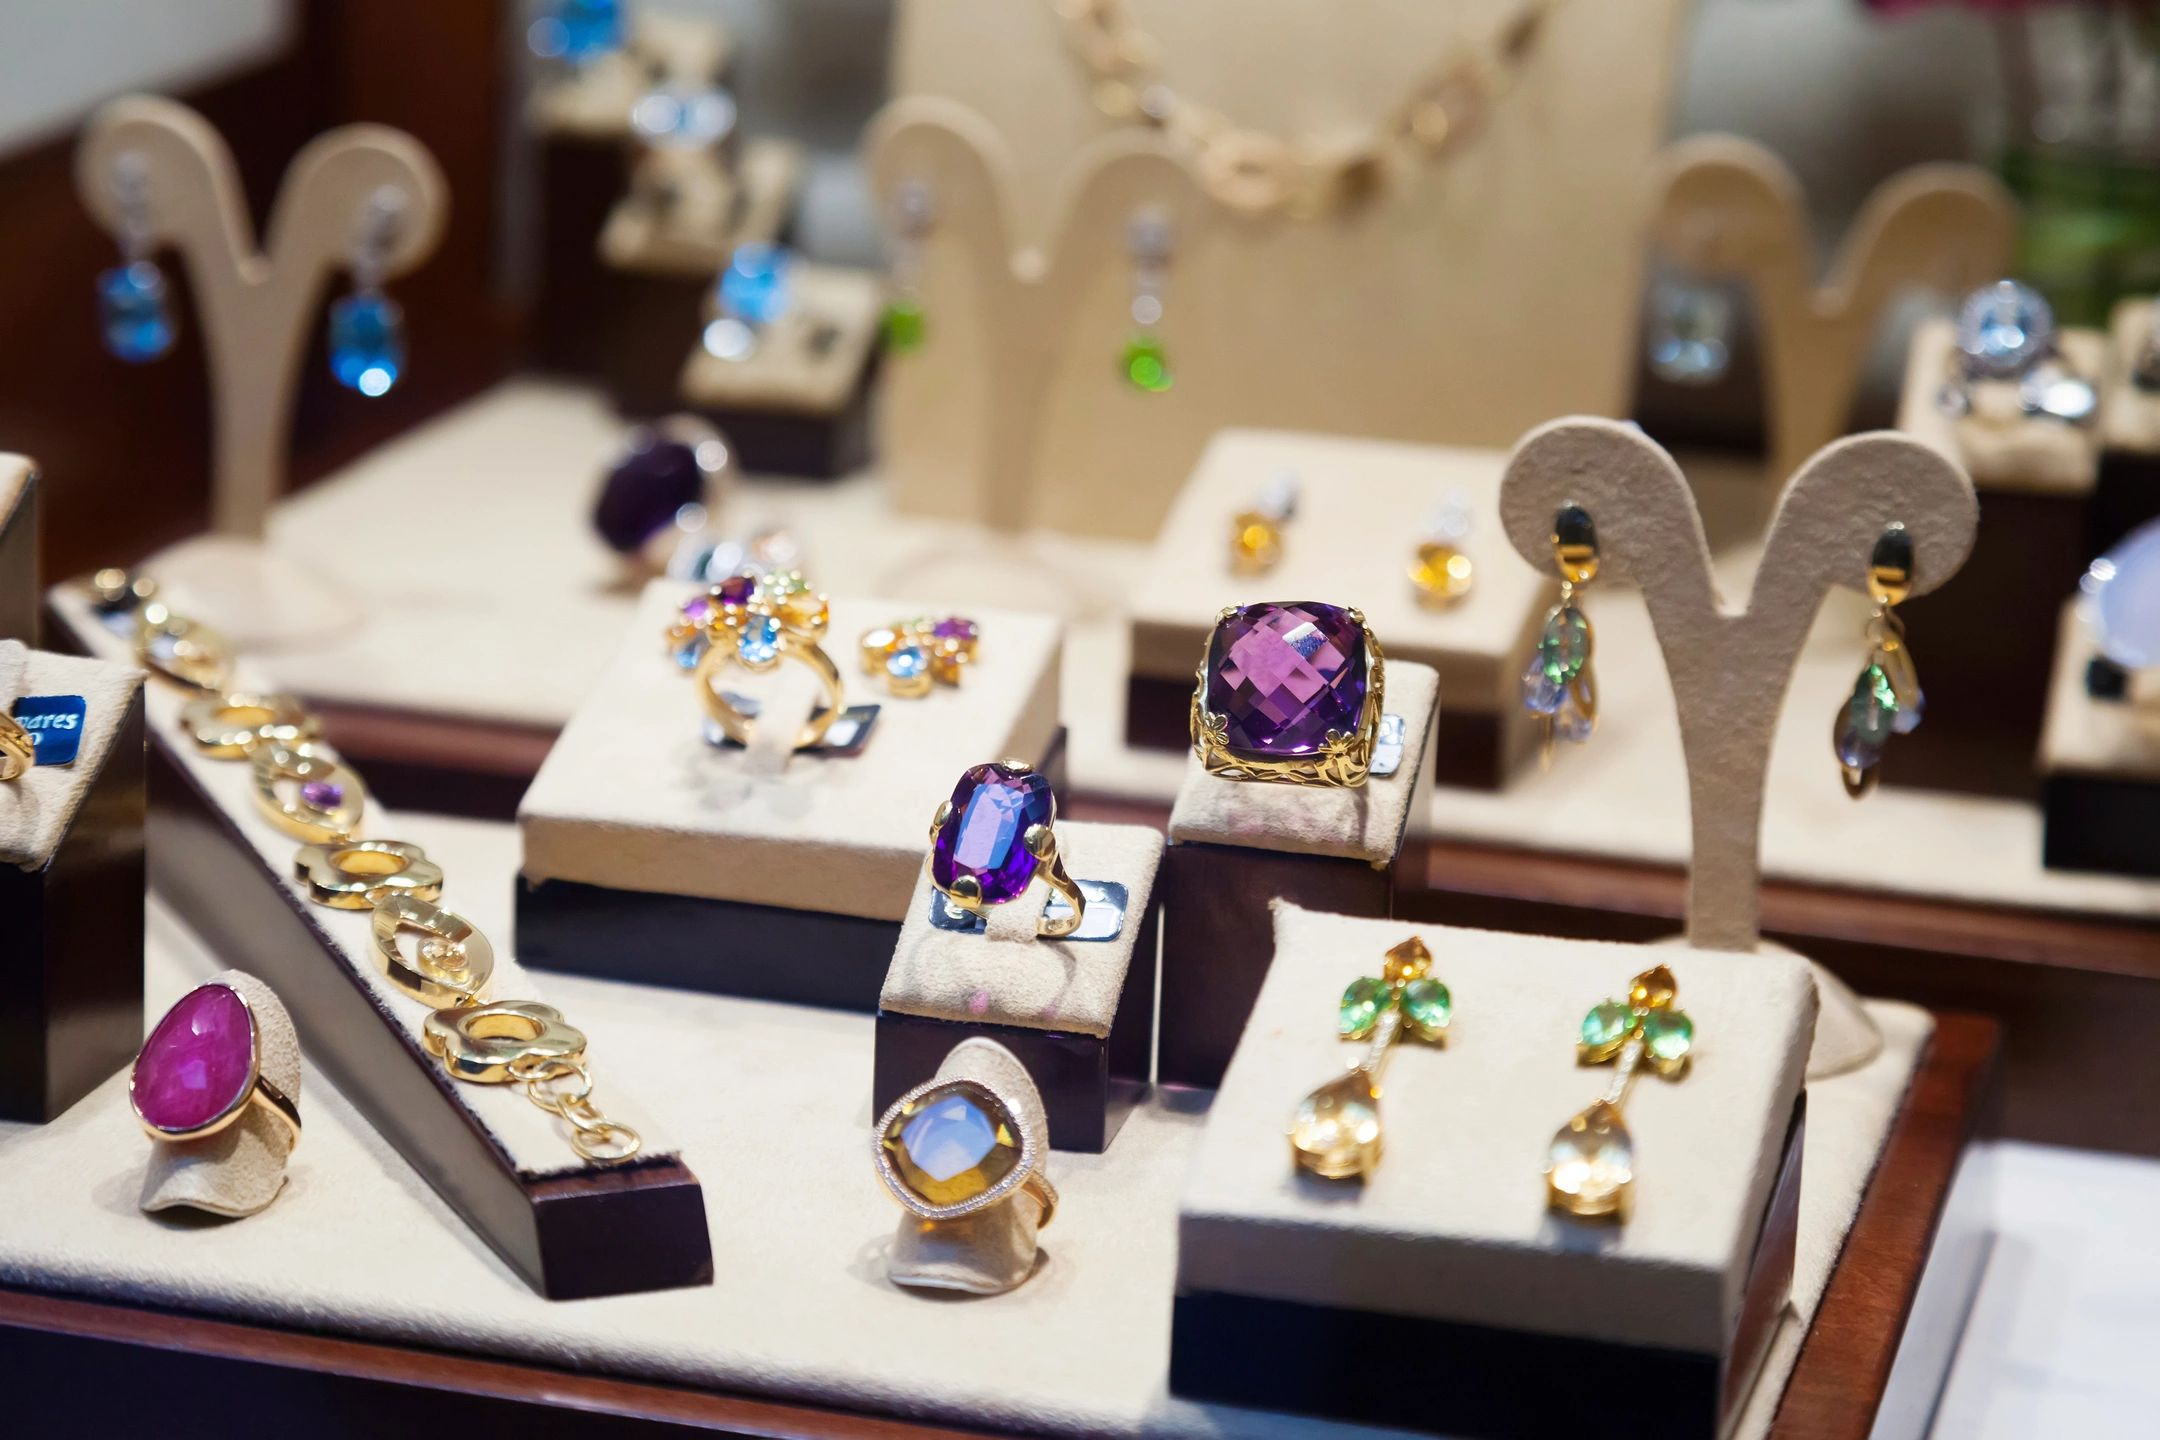 Tips On Getting the Most Out of Your Wholesale Fashion Jewelry Purchase